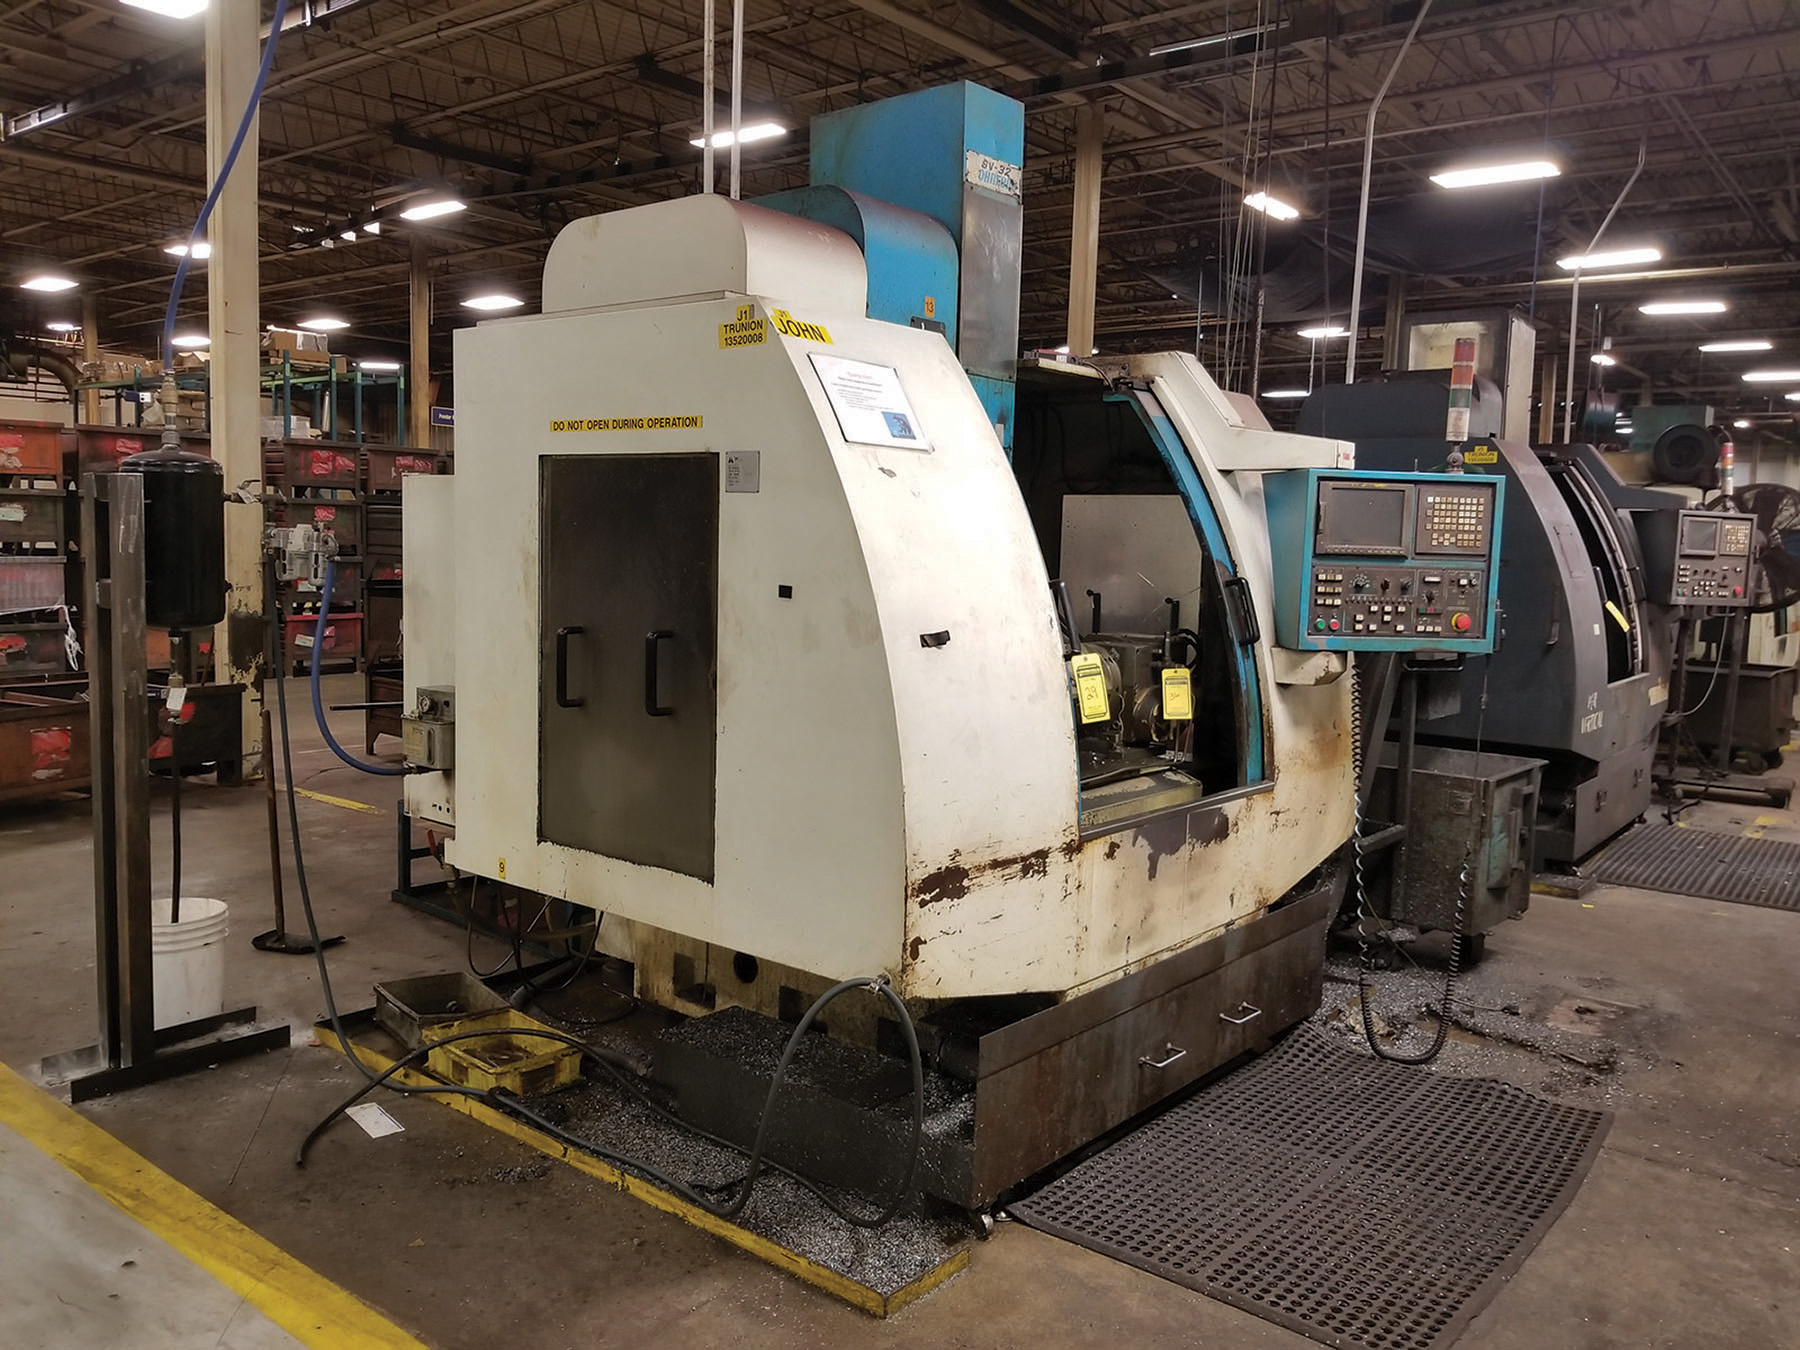 Lot 29 - 2002 JOHNFORD SUPER VERTICAL SV-32 VERTICAL MACHINING CENTER, 4-AXIS, S/N MB2302, 17.5'' X 39.25''